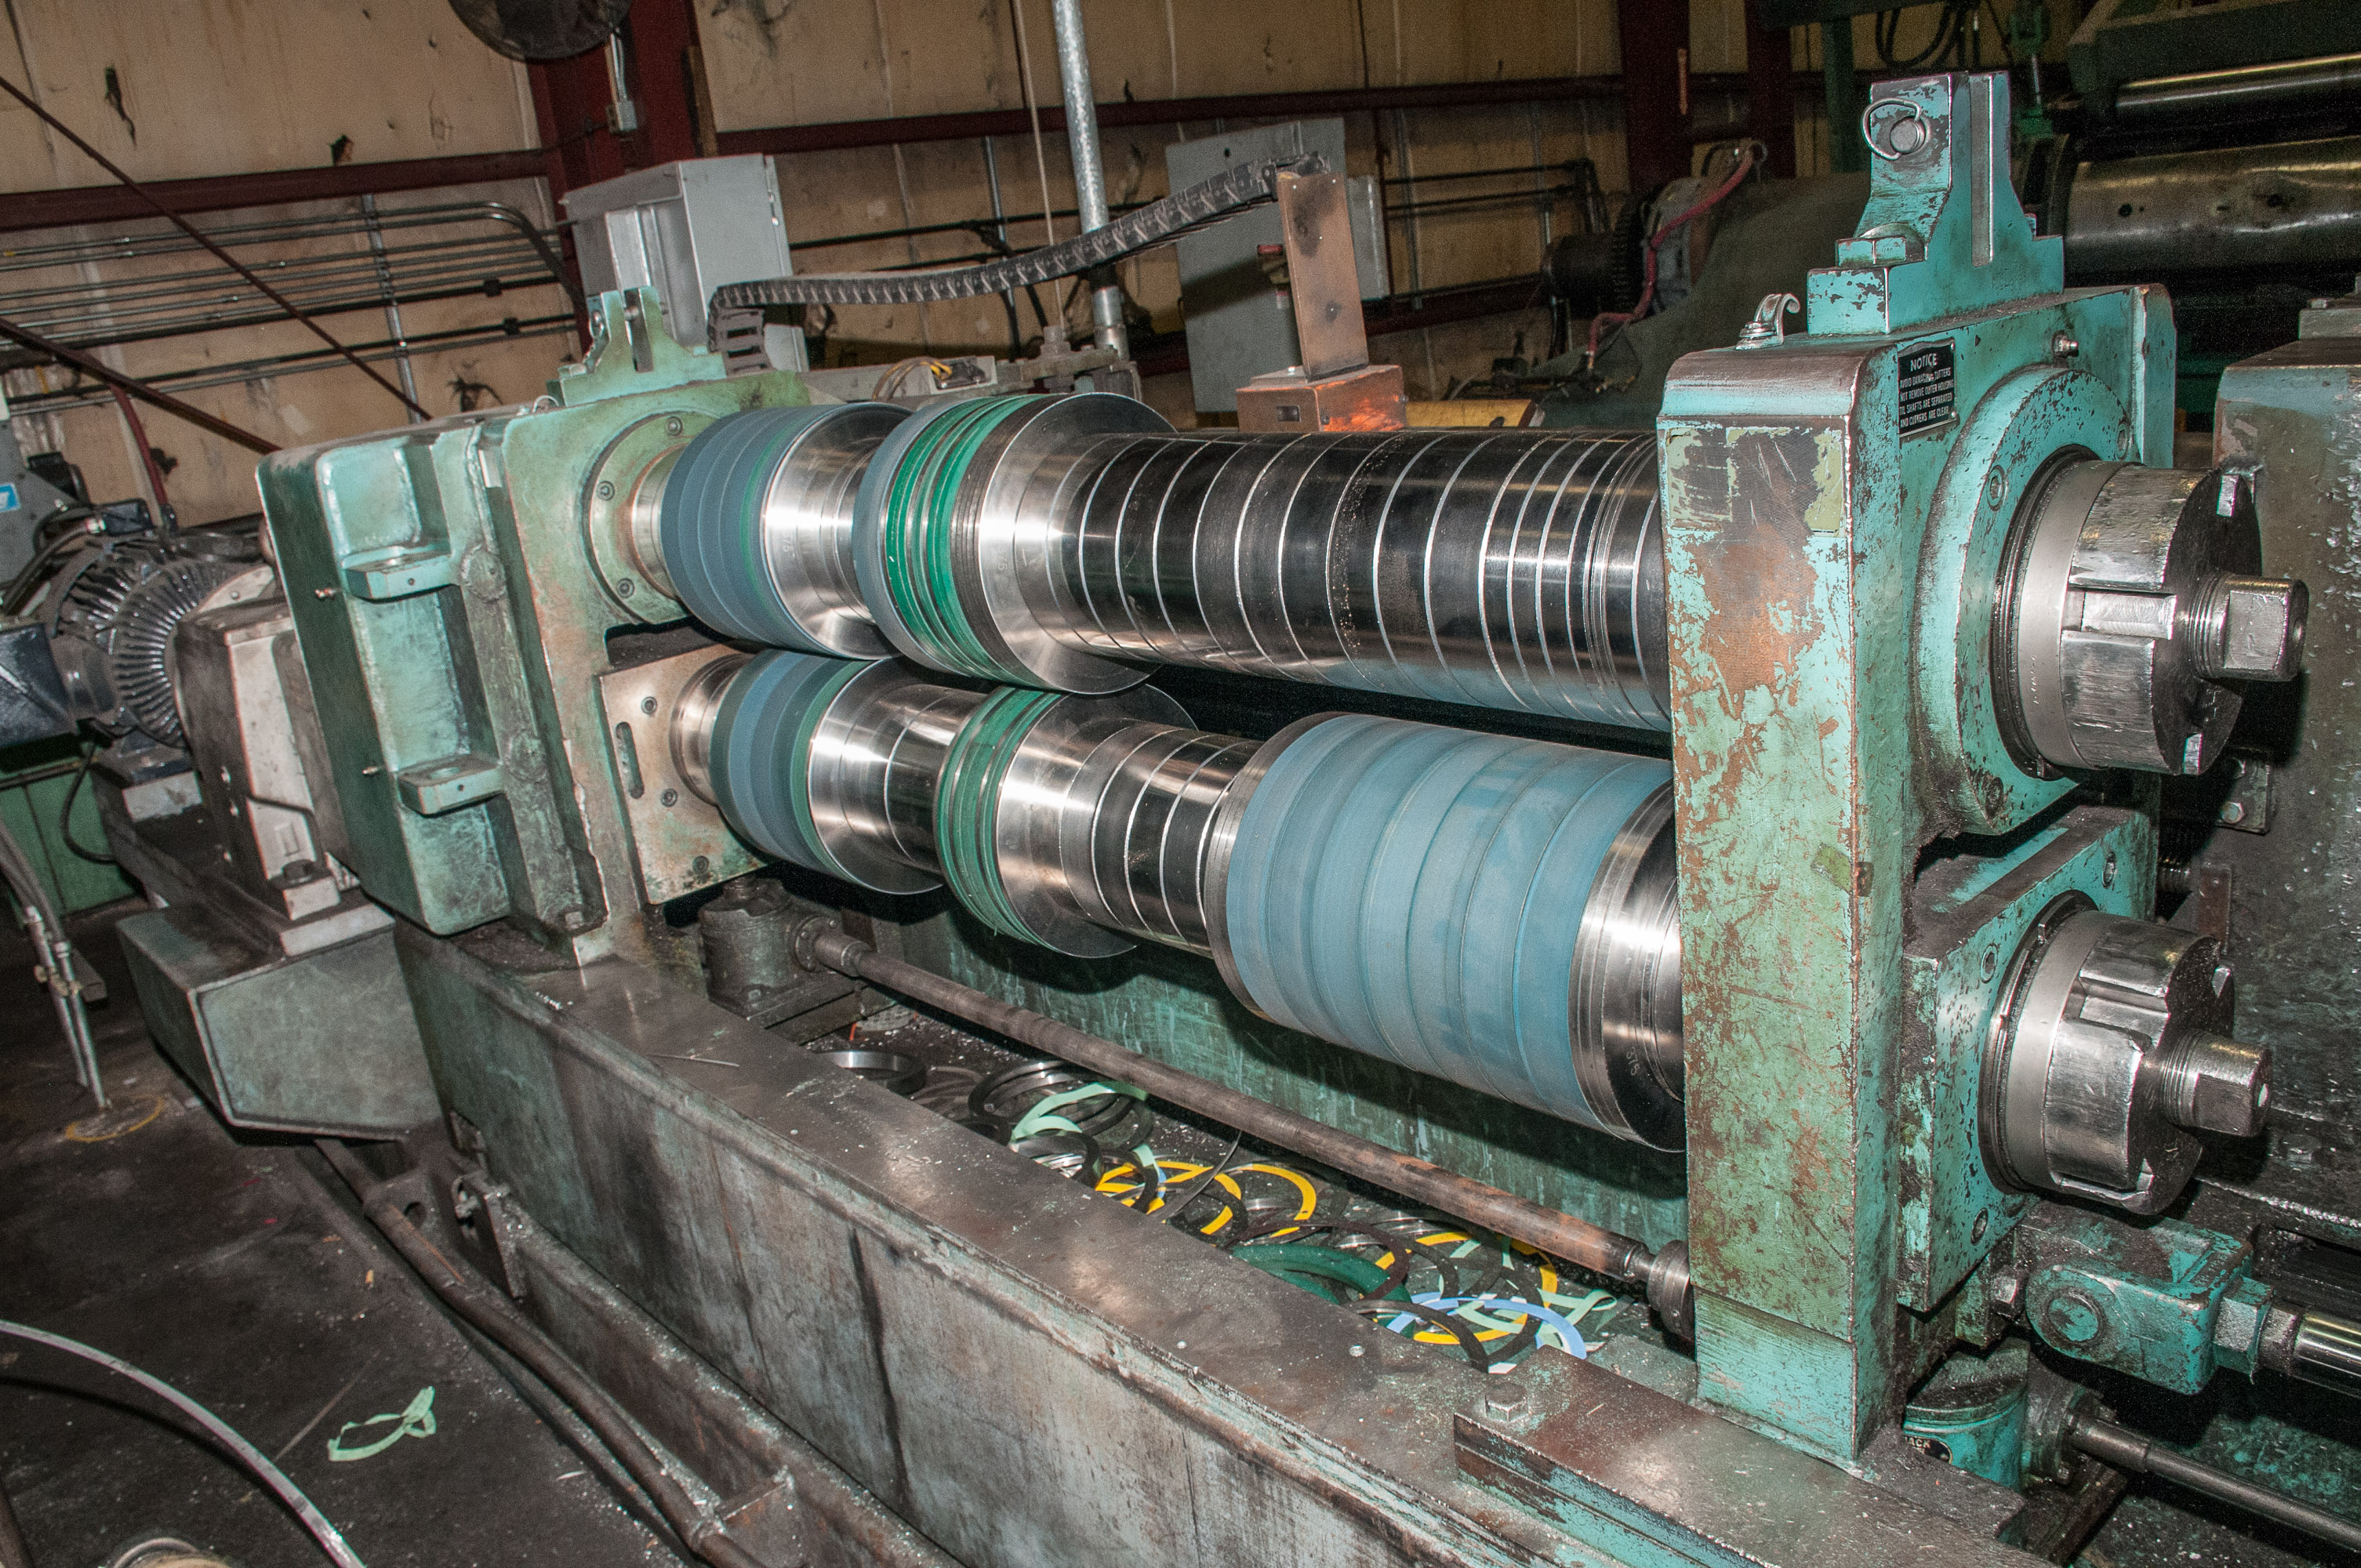 """60"""" x .125"""" 40,000lb. Yoder Slitting Line, New Controls 2019, Consisting of Coil Cart, Yoder Uncoile - Image 5 of 27"""